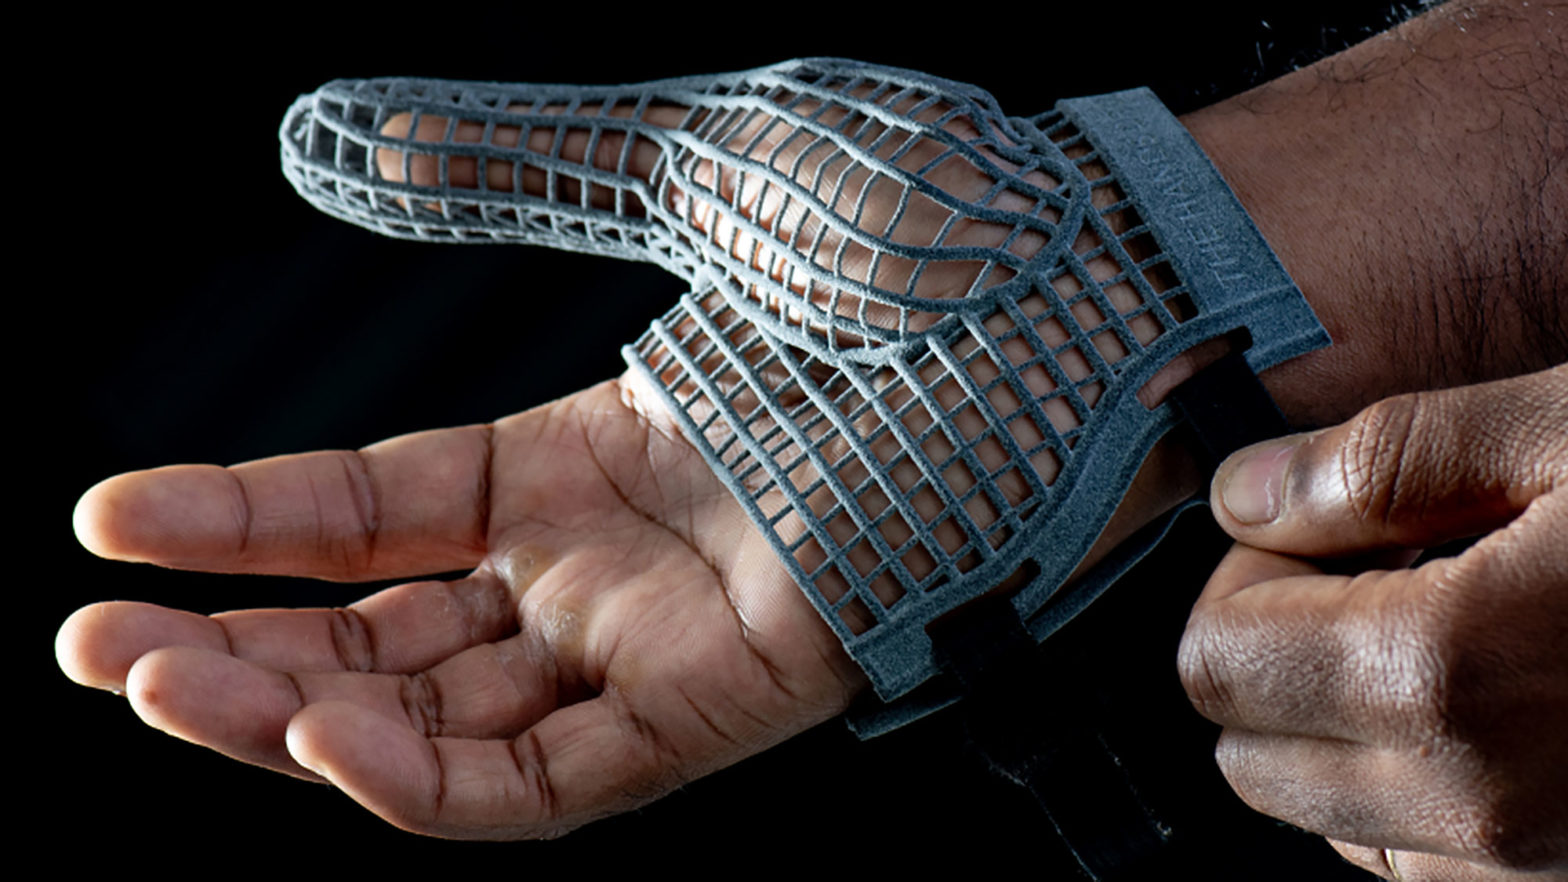 Jaguar Land Rover 3D-printed Glove